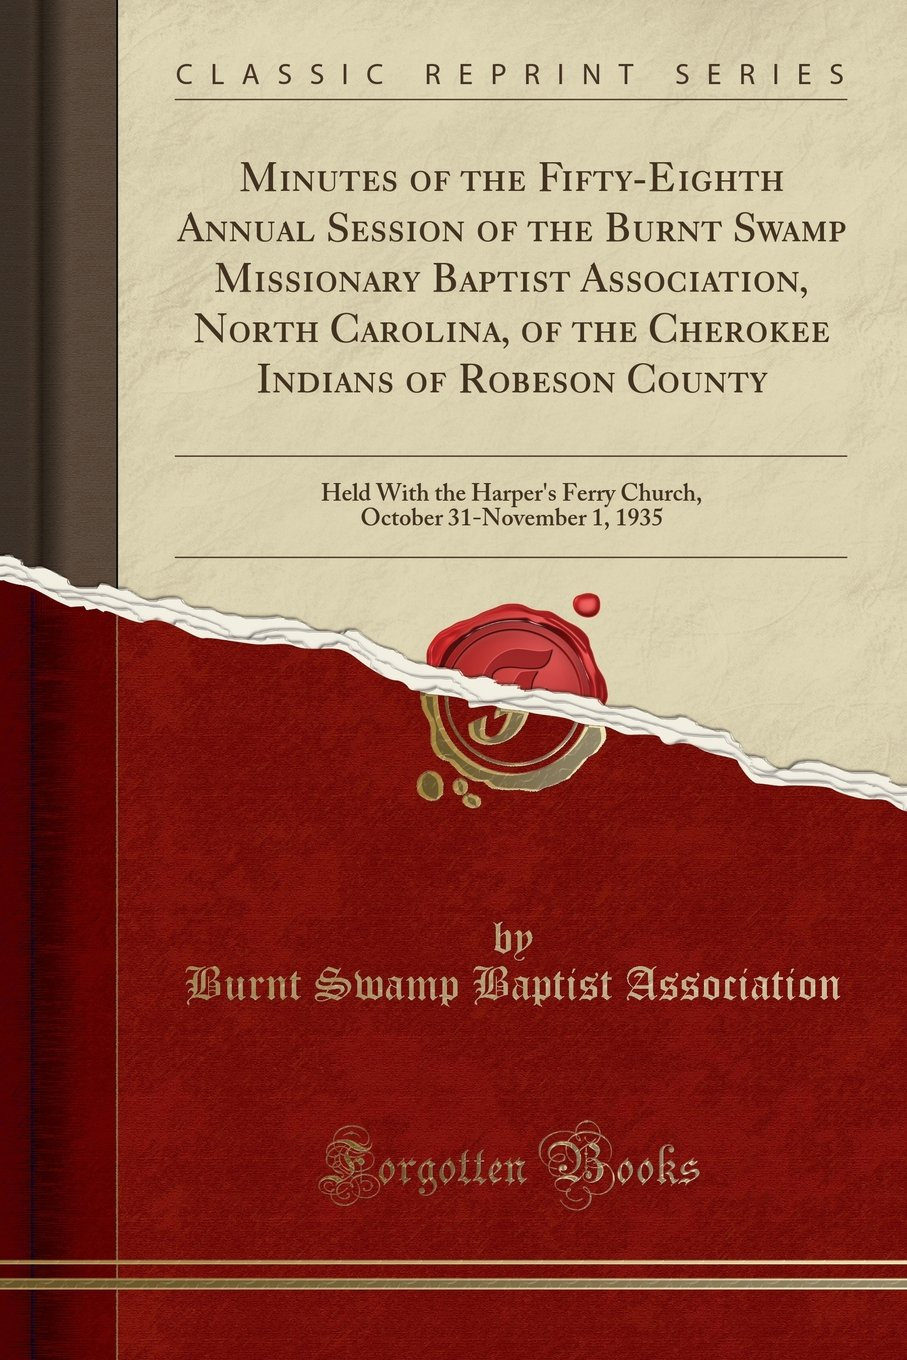 Minutes of the Fifty-Eighth Annual Session of the Burnt Swamp Missionary Baptist Association, North Carolina, of the Cherokee Indians of Robeson ... October 31-November 1, 1935 (Classic Reprint) pdf